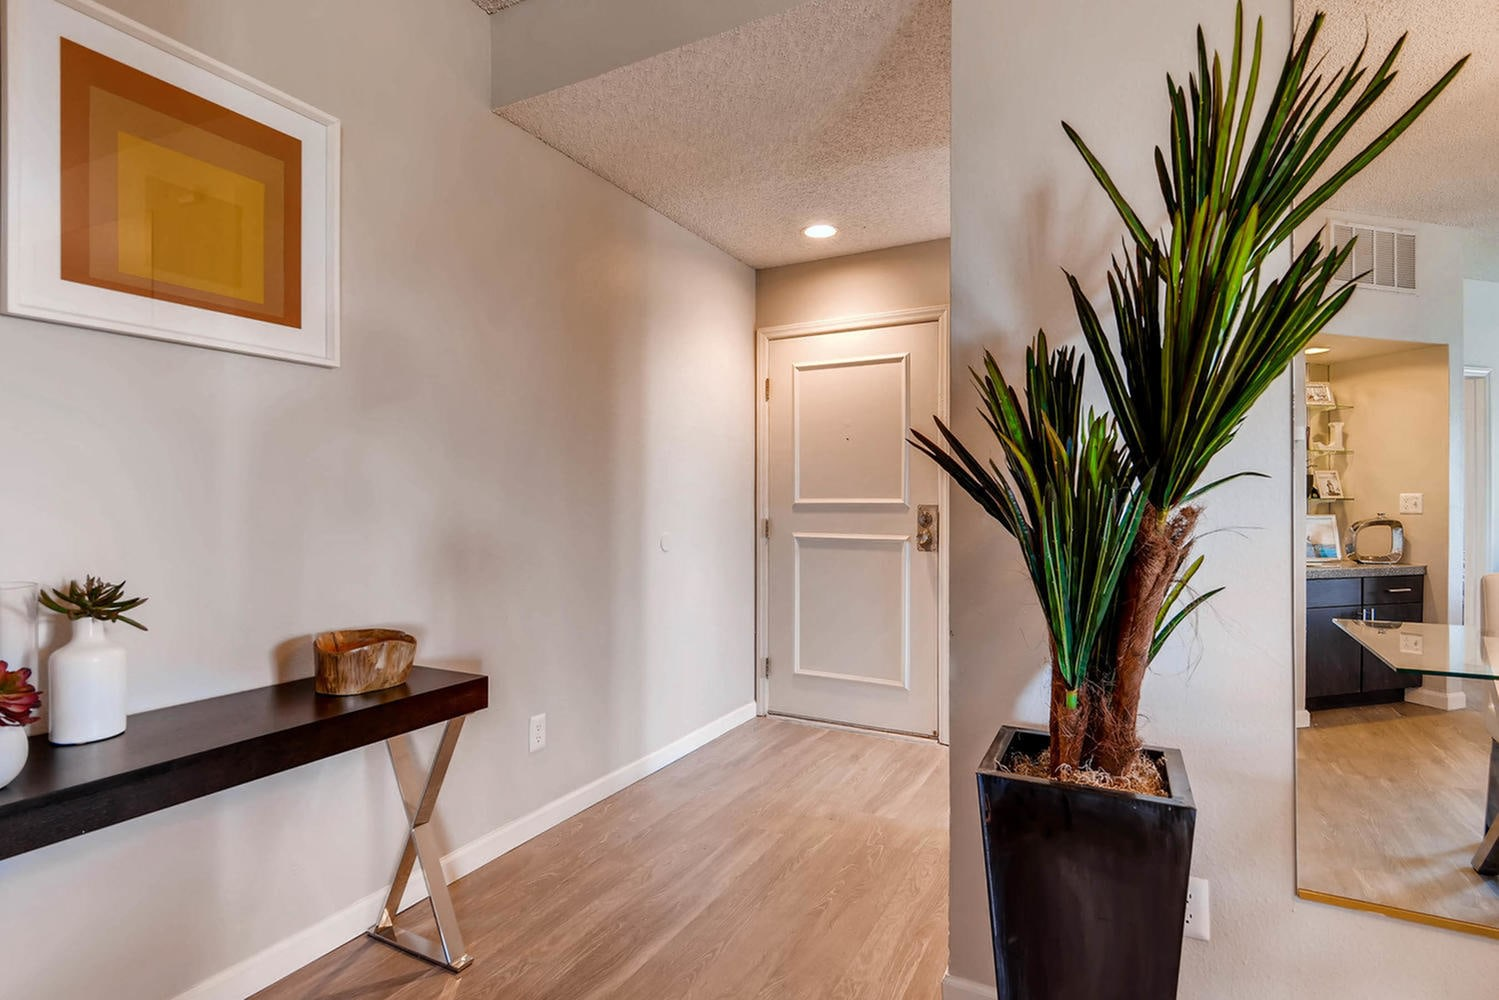 100 Best Apartments For Rent In Denver, CO (with pictures)!